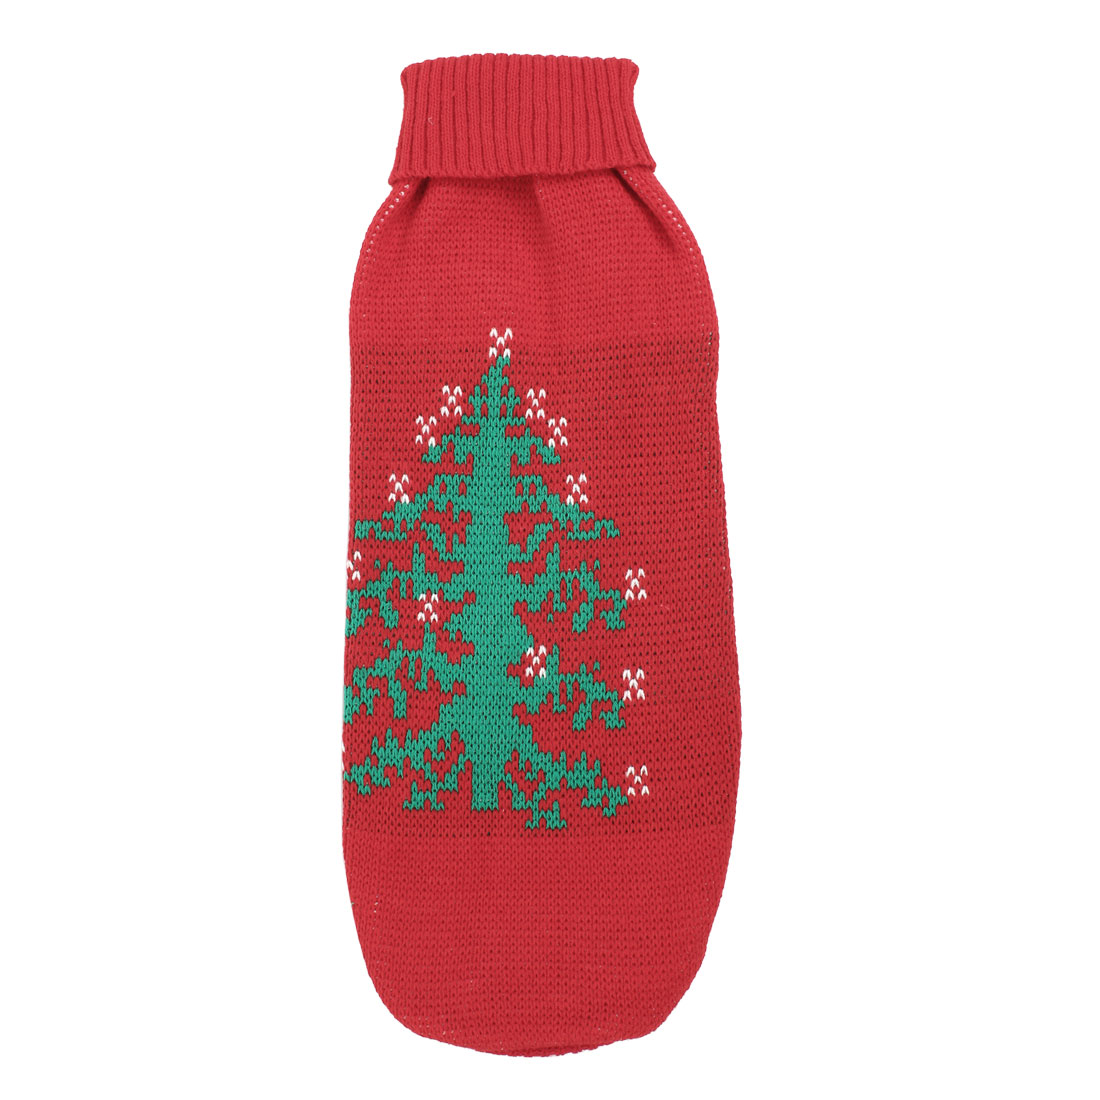 Green Red Knitted Christmas Tree Print Sleeve Pet Dog Apparel Sweater M